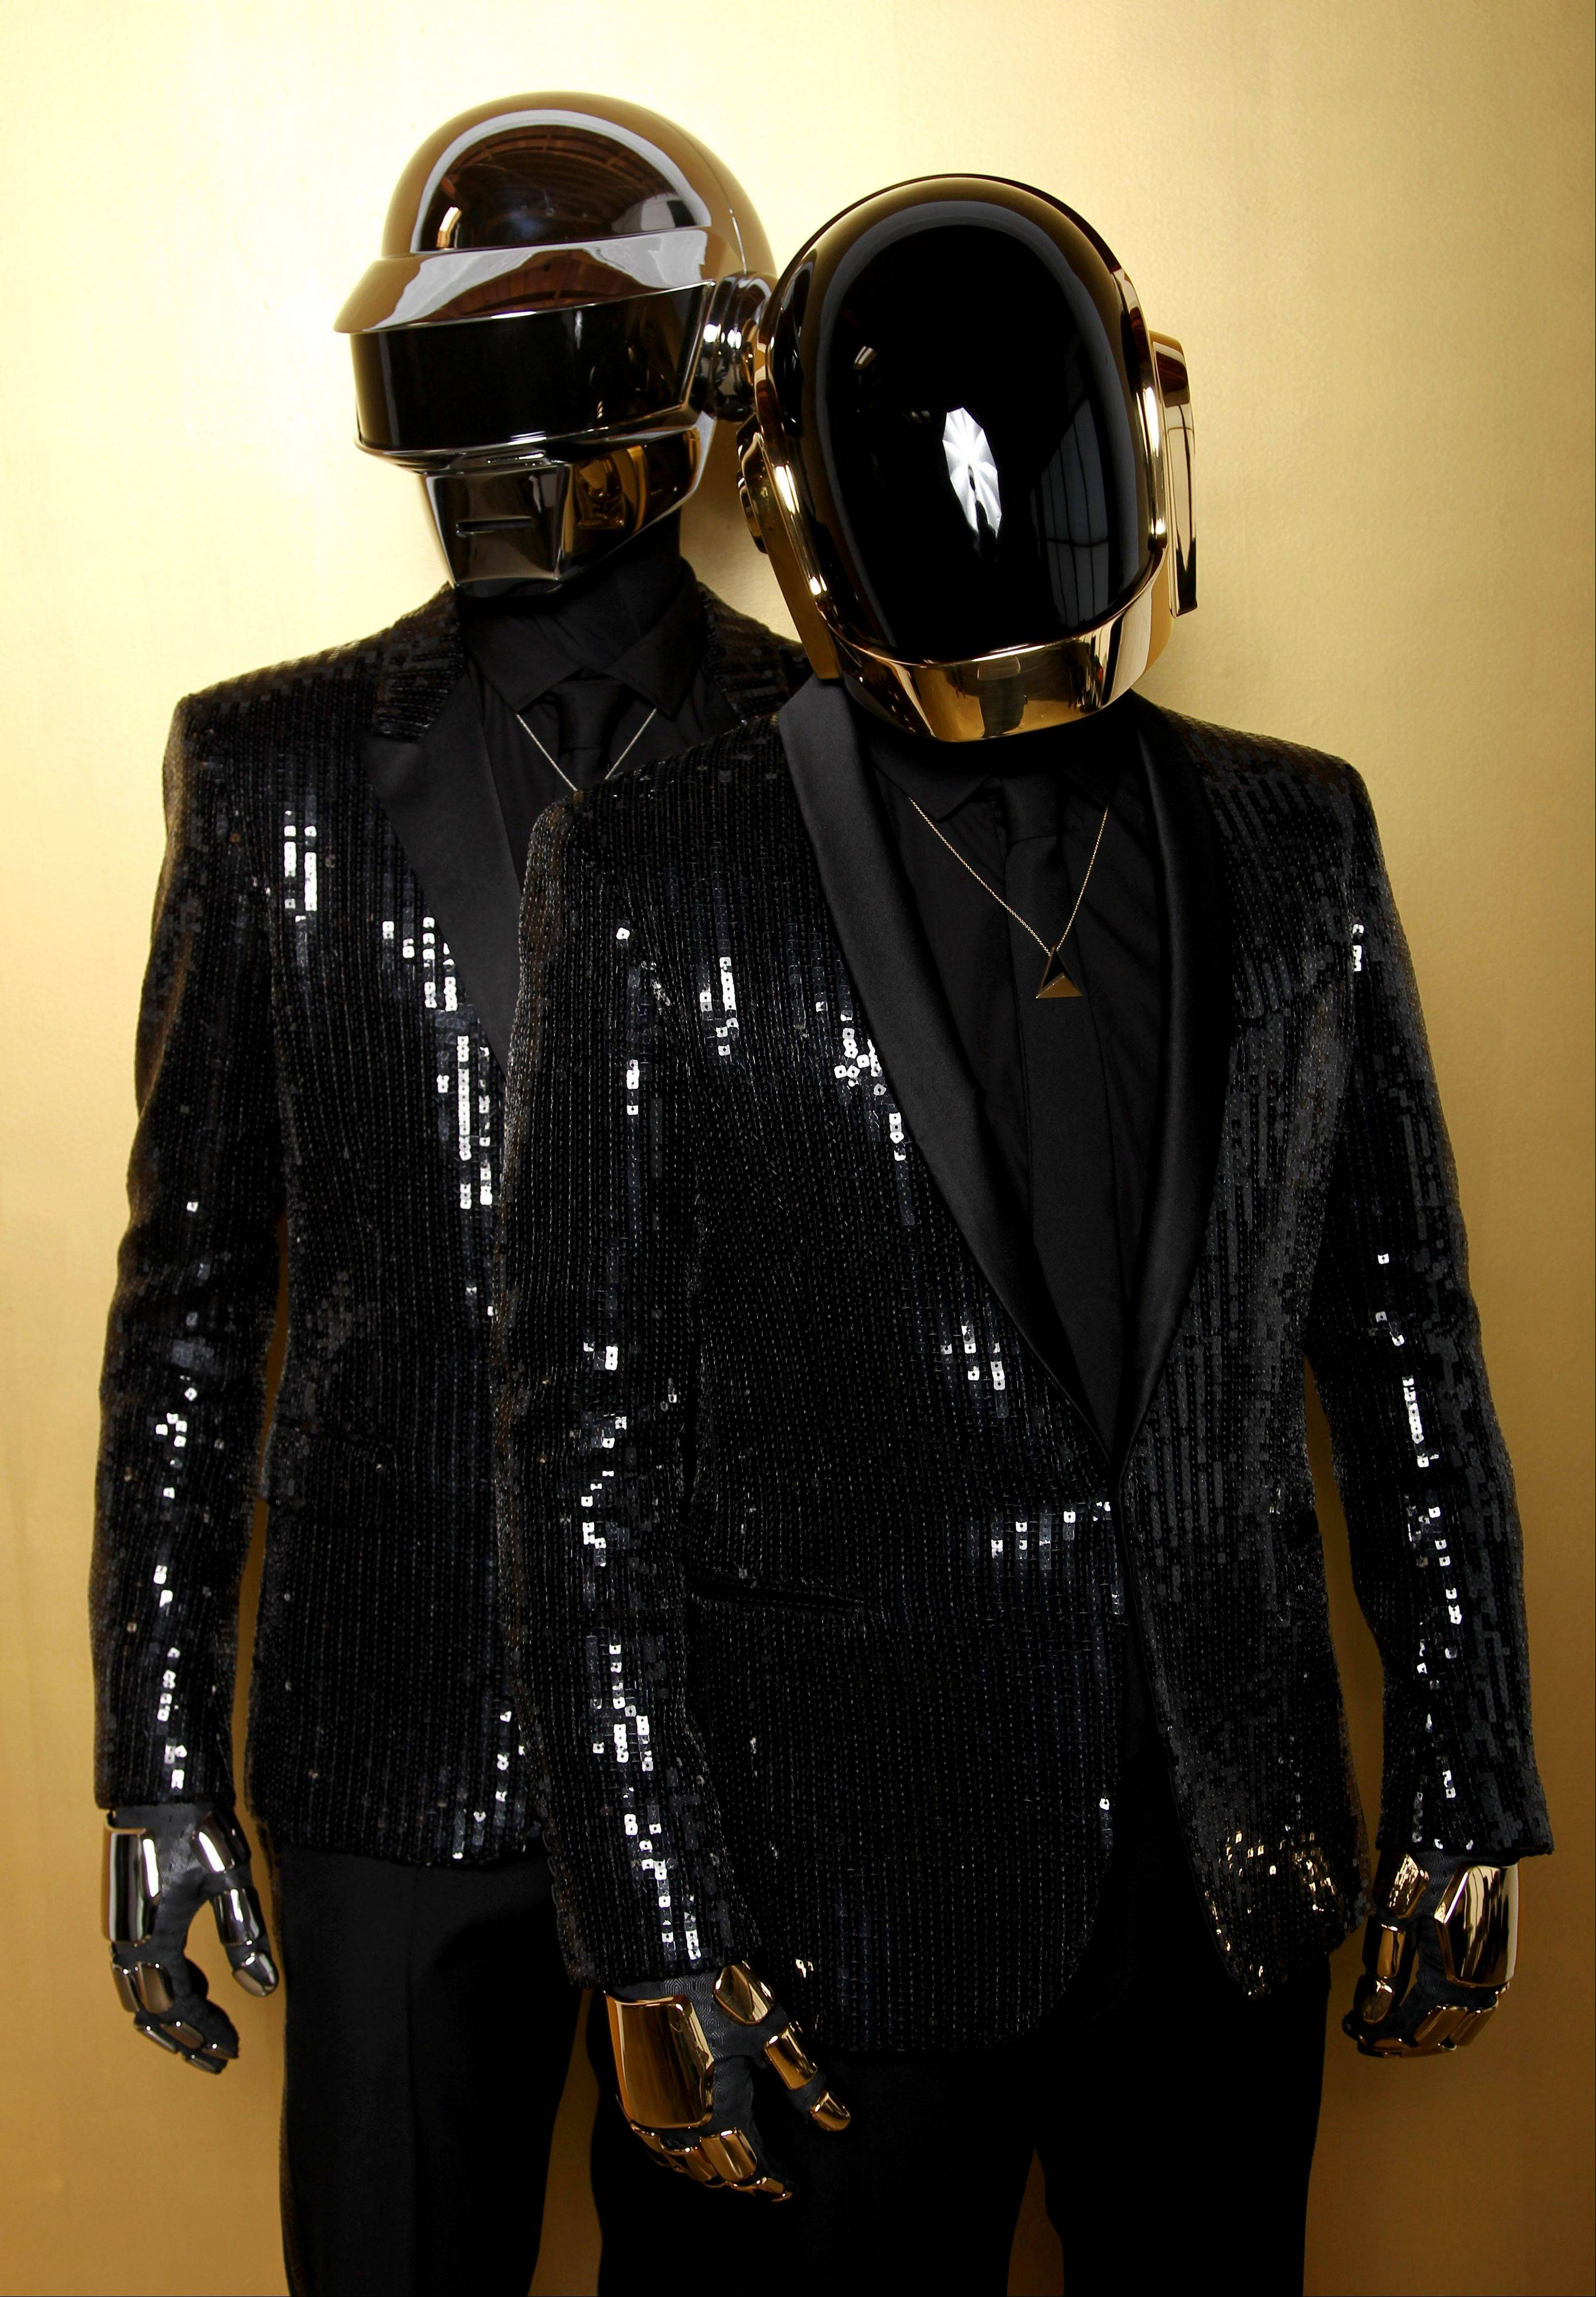 Underneath those helmets are Thomas Bangalter, left, and Guy-Manuel de Homem-Christo, better known as Daft Punk.